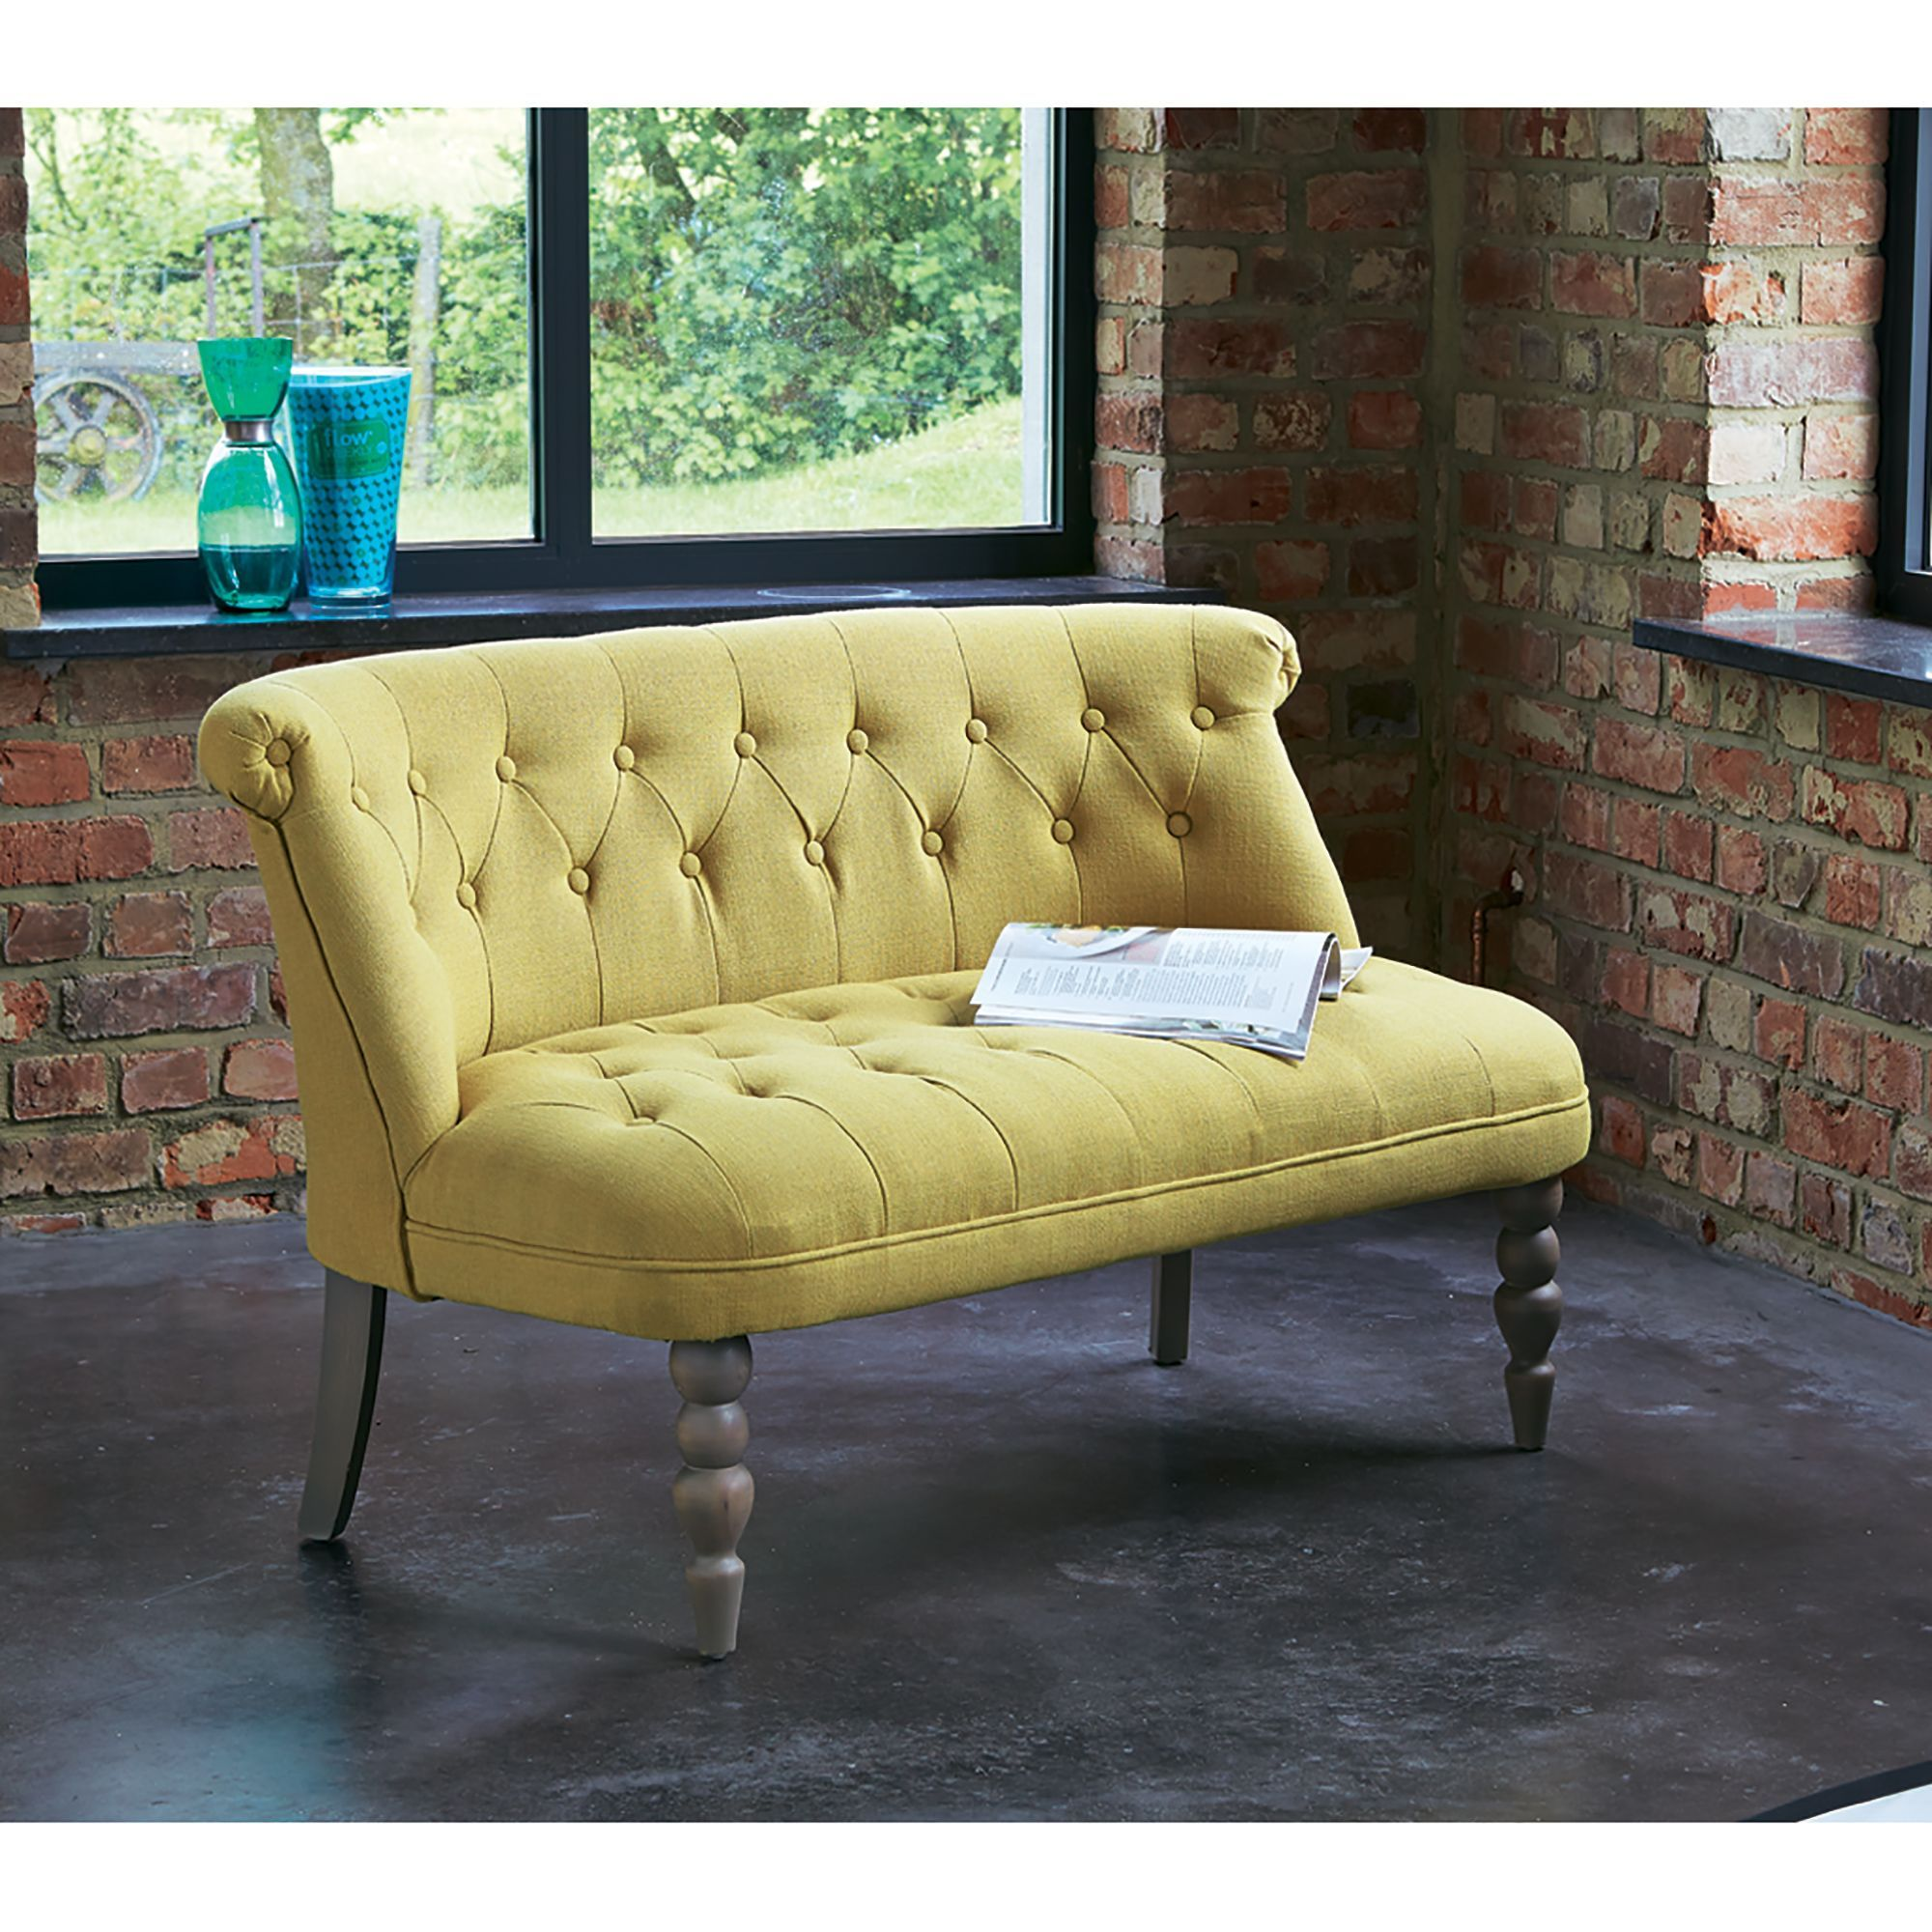 Fauteuil Style Crapaud Collection Chanteloup Httpwwwalineafr - Canape style crapaud